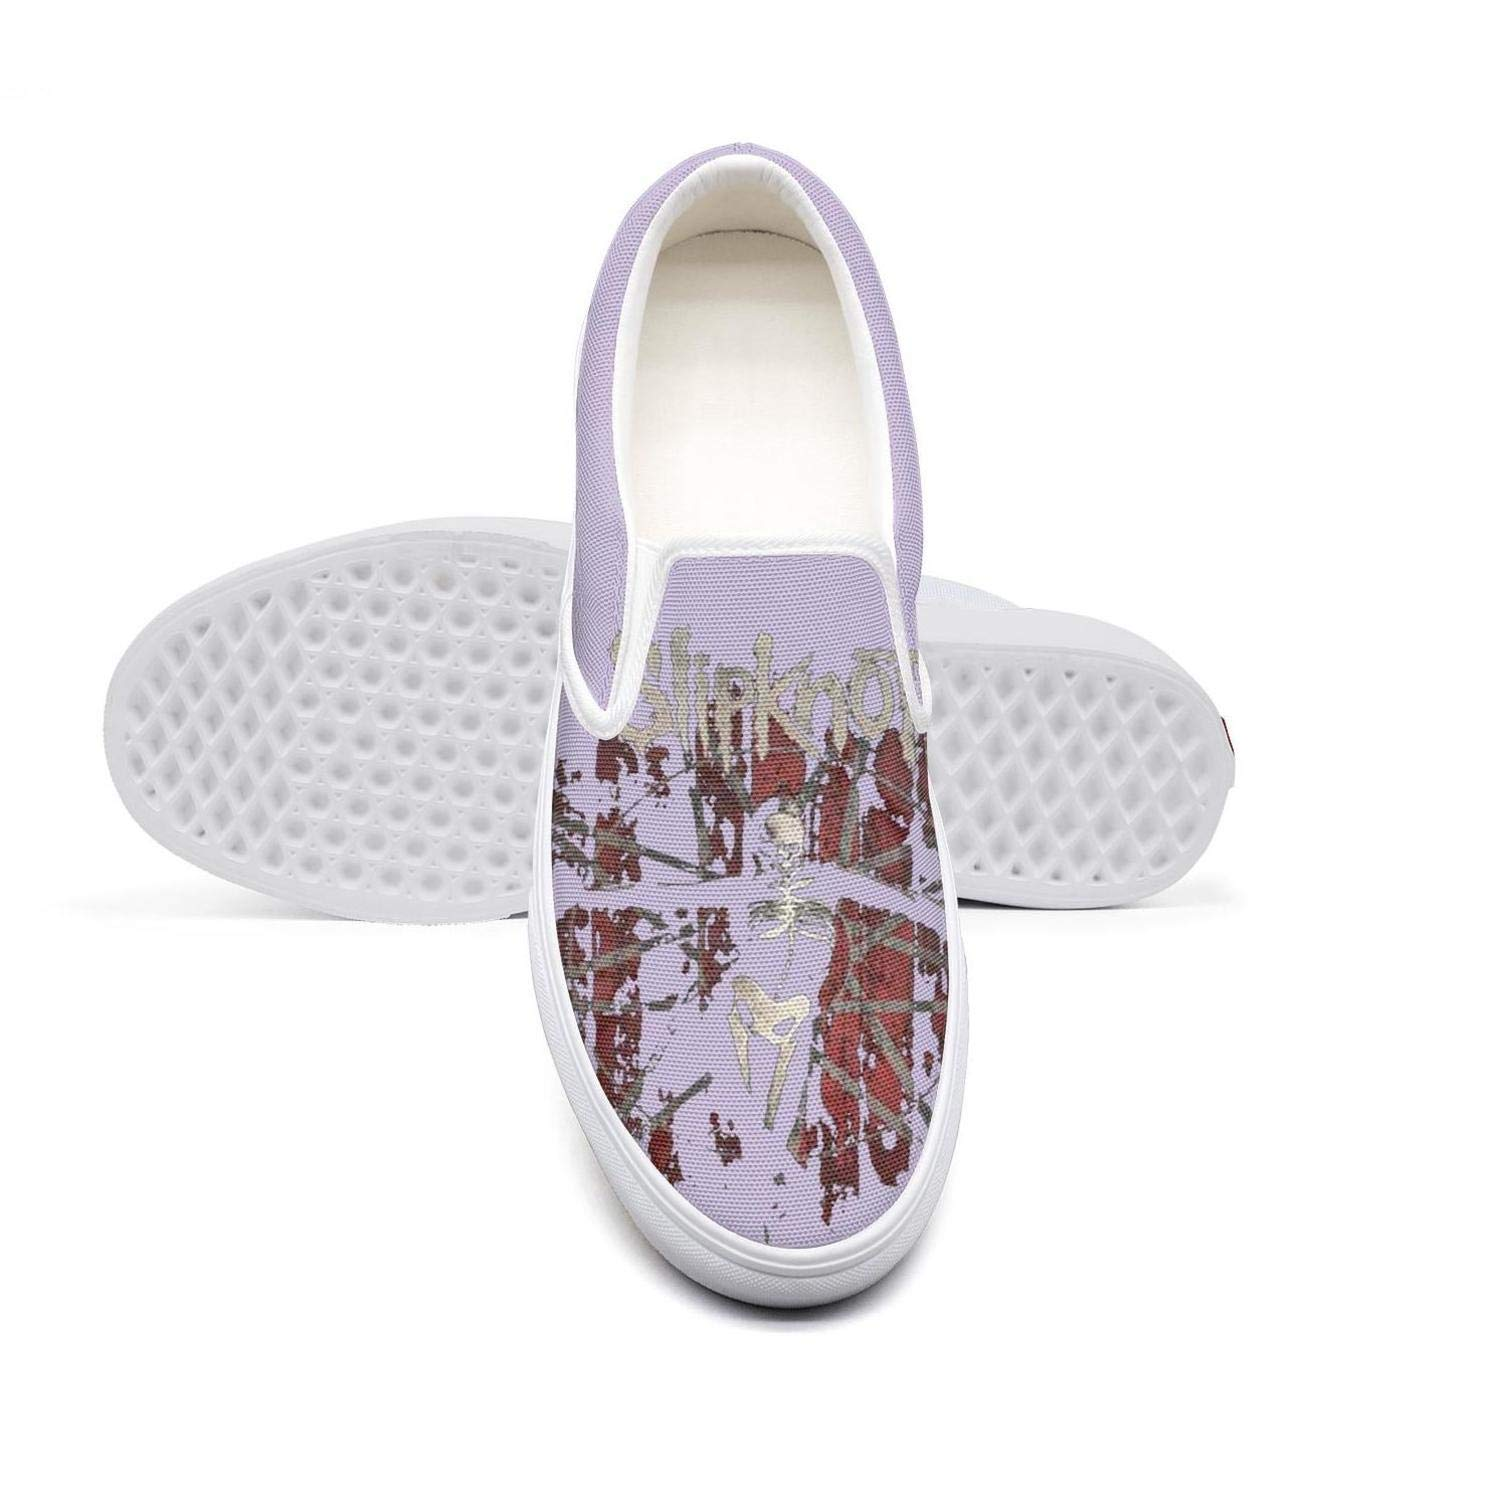 NI kingss Womens Slip on Loafer Casual Shoes Sneakers Print Boat Skate Shoe